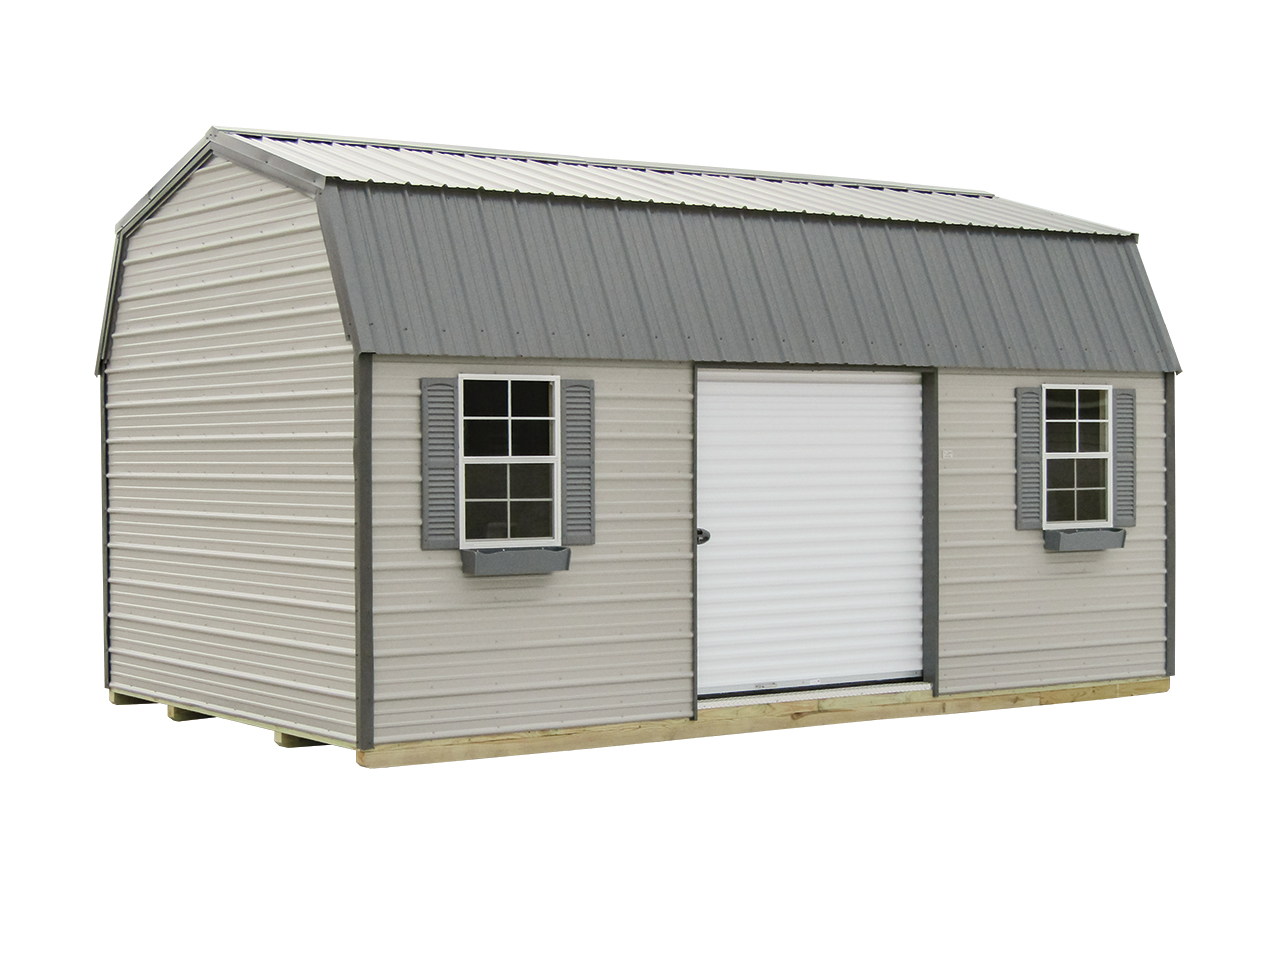 12x20 Lofted Garden Shed